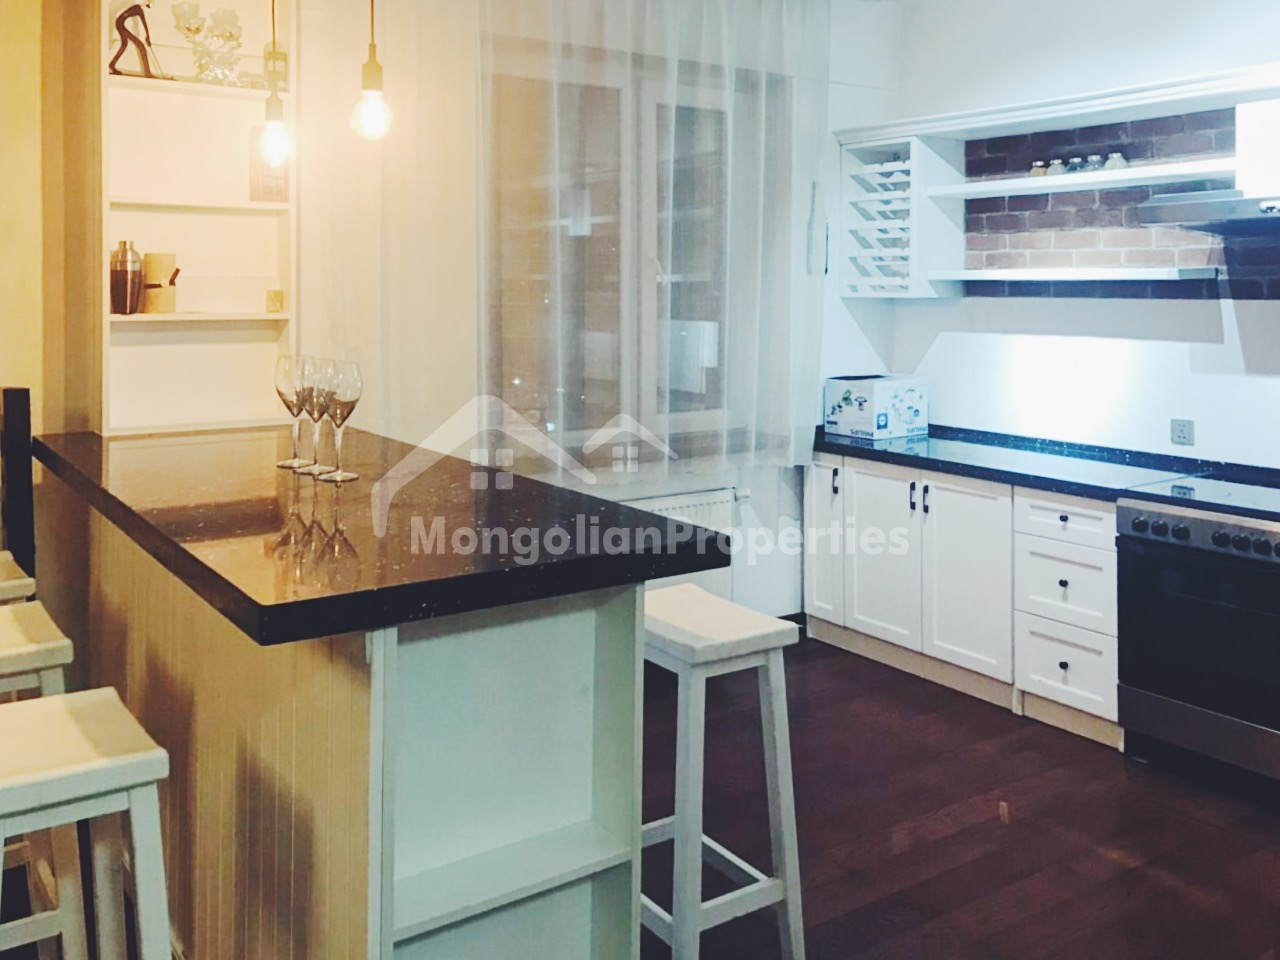 FOR RENT: Beautiful, cozy and fully furnished one bedroom apartment in Embassy Area